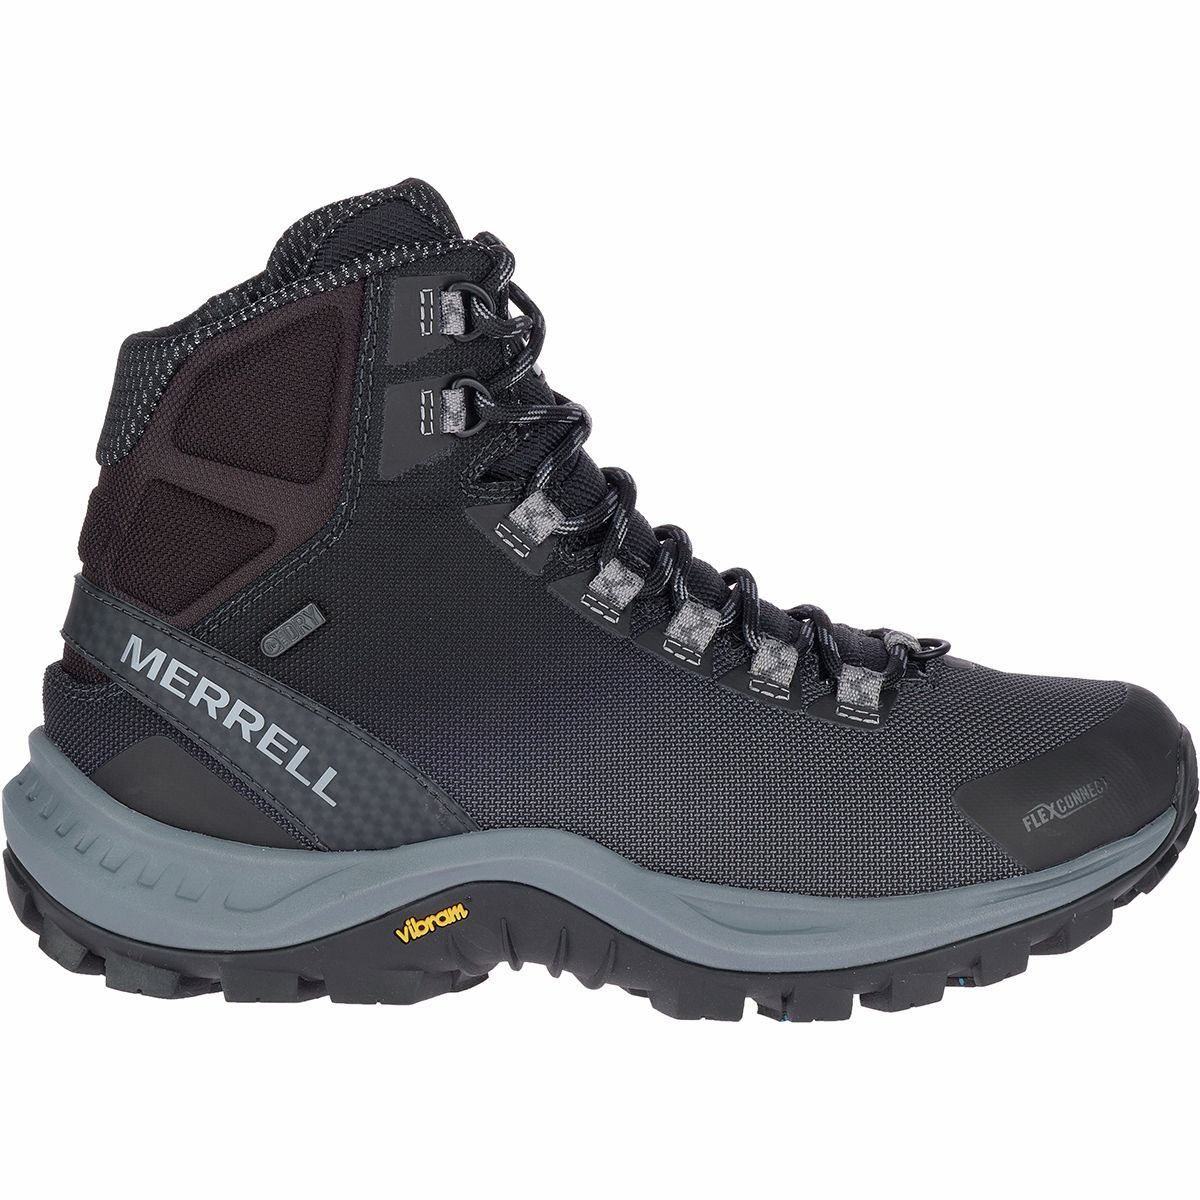 Merrell Thermo Cross 2 Mid WP Boot - Men's #highsandals